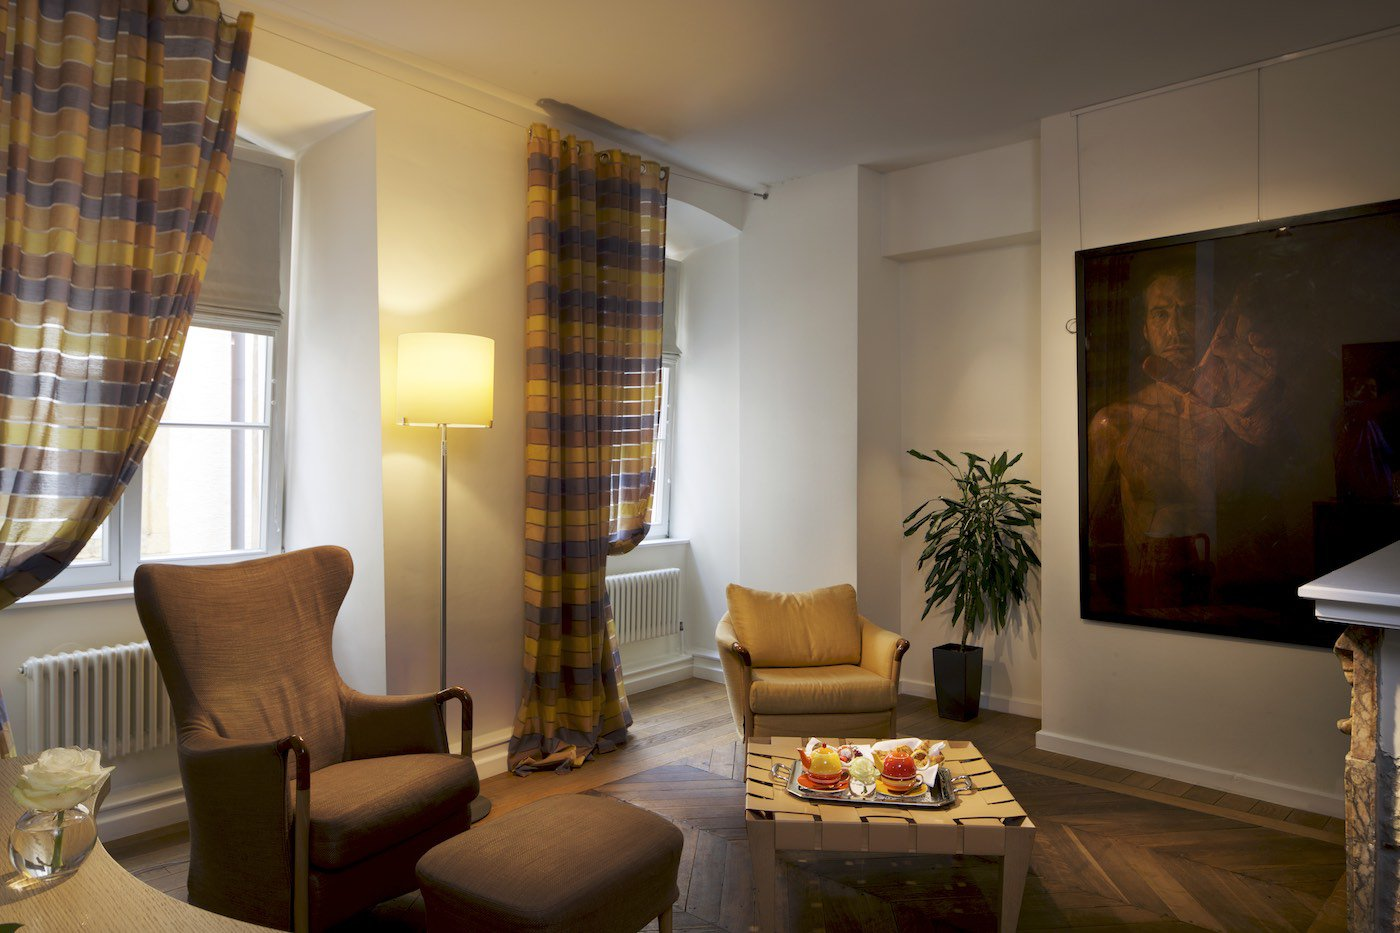 Hotel Parc Beaux-Arts - Goeres Hotels Luxembourg